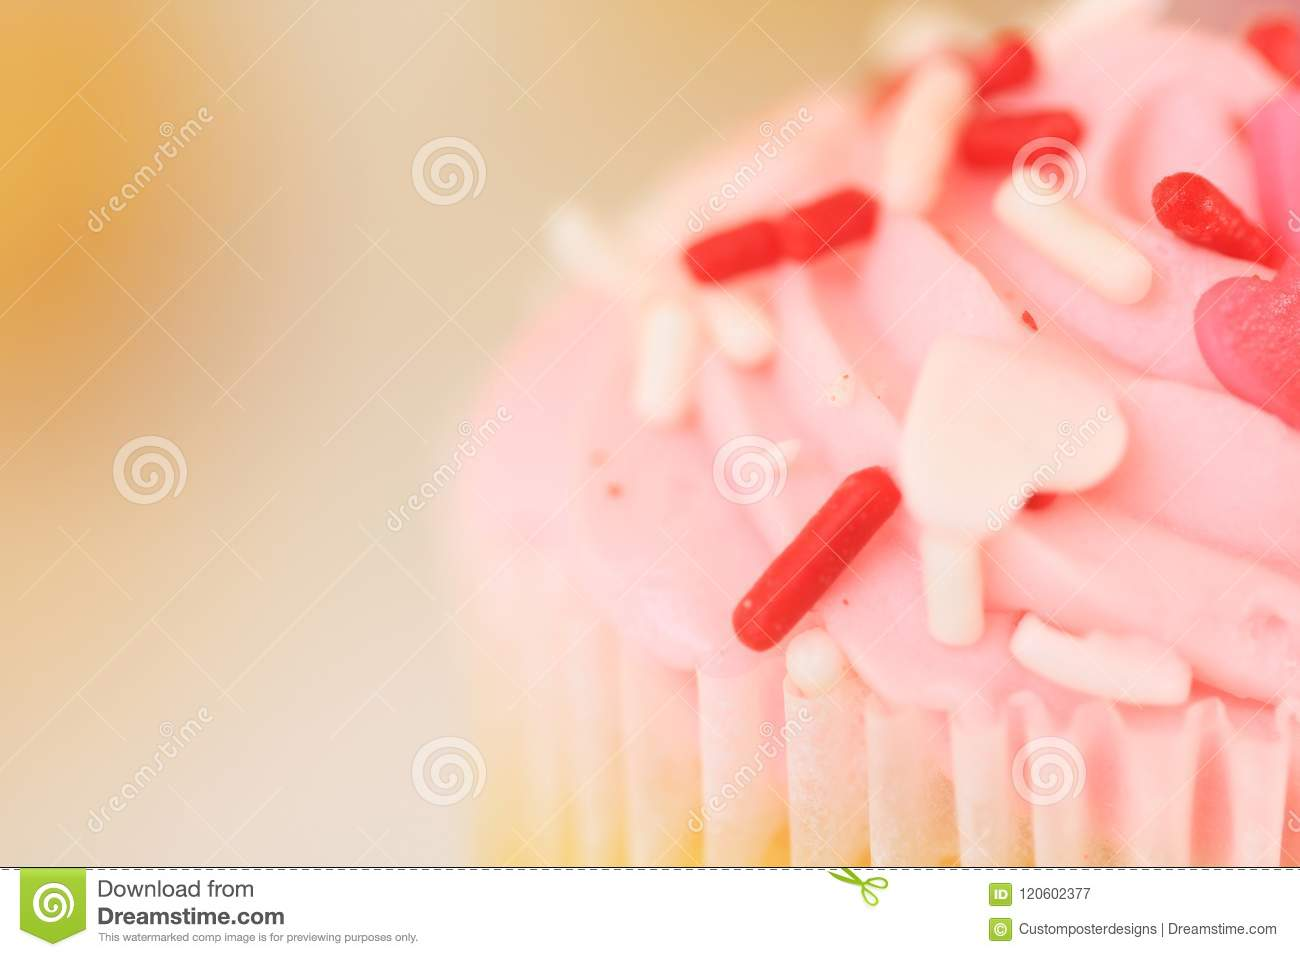 Download An Up Close Pink Frosted Cupcake. Stock Image - Image of large, good: 120602377